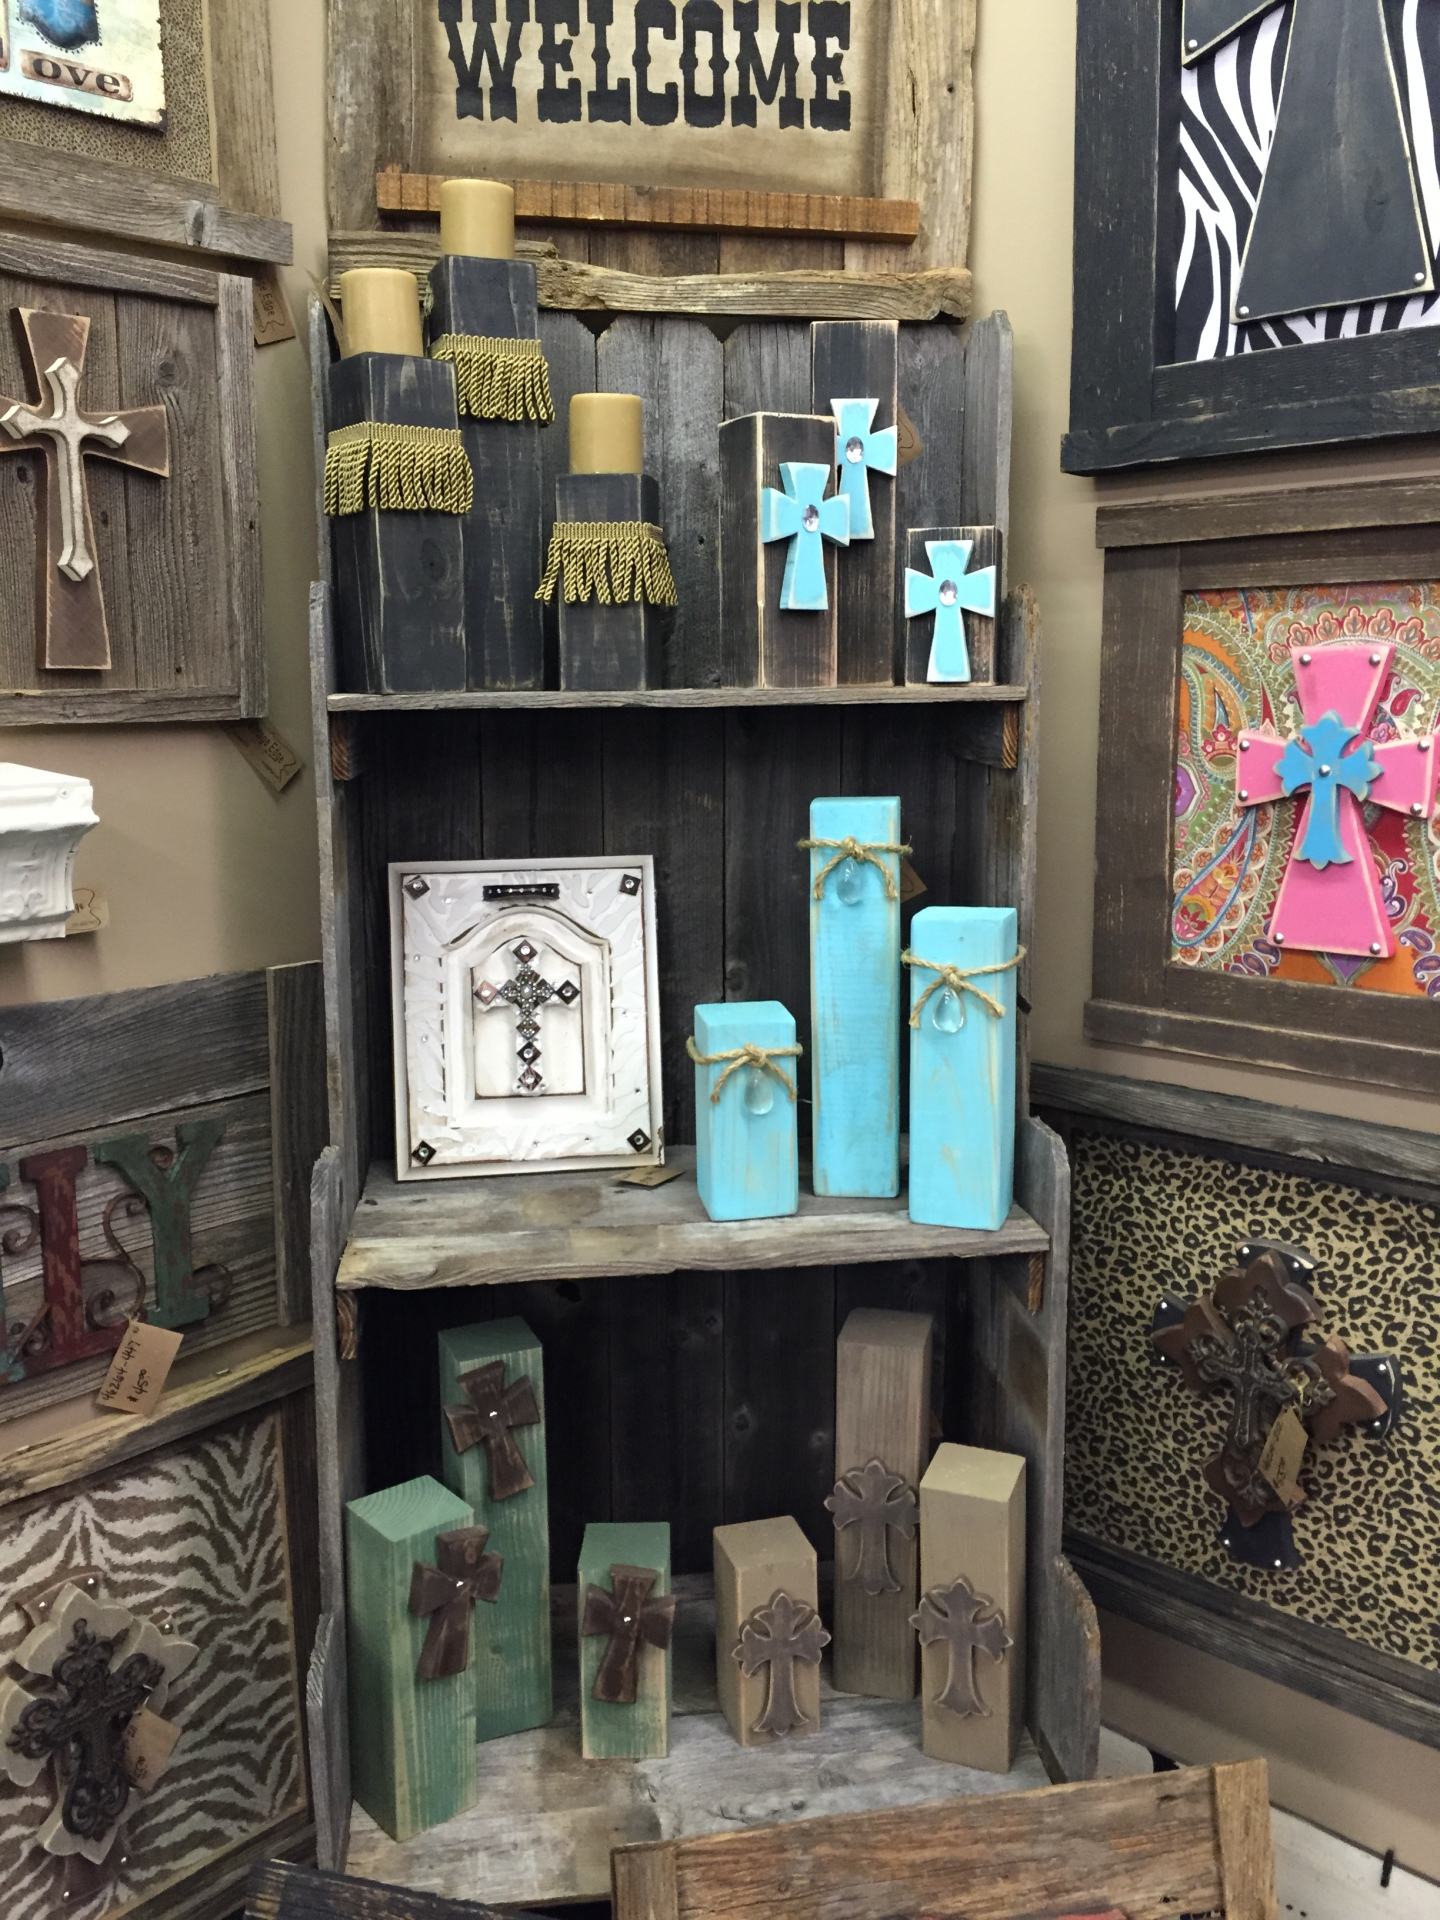 Rustic wood candle holders that are one of a kind. Crosses, stars to match the wall hangings